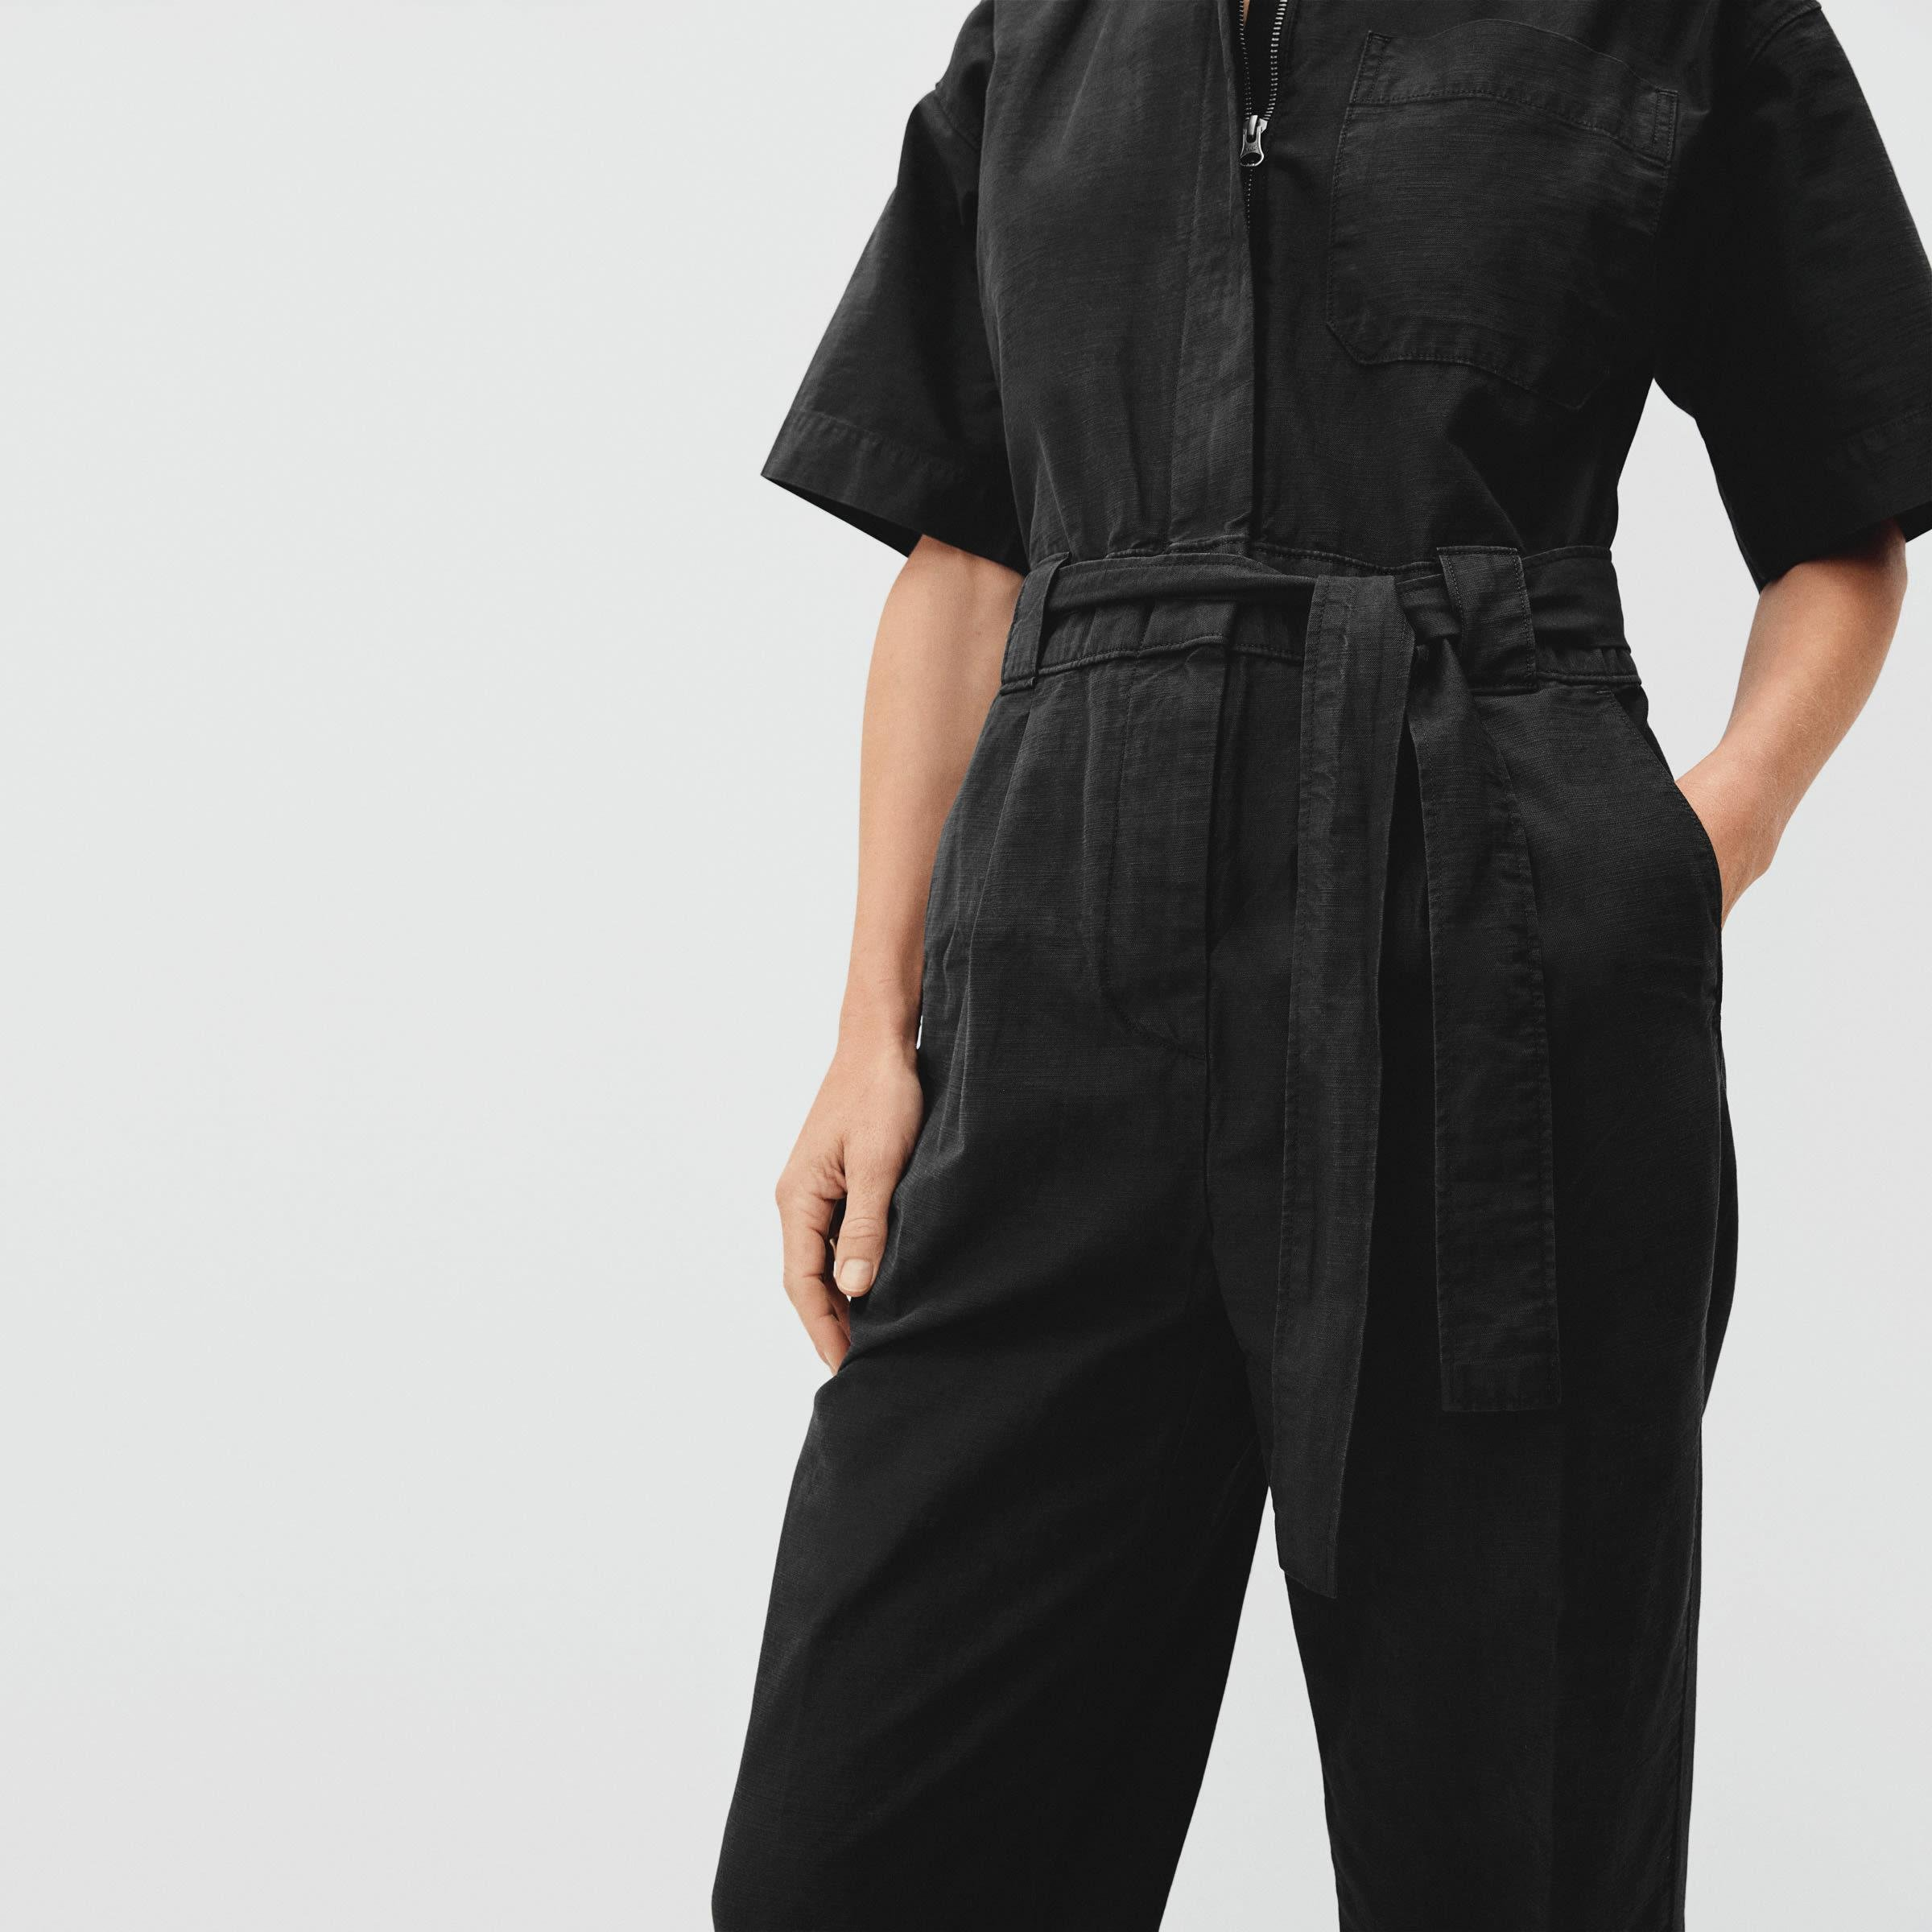 The Fatigue Short-Sleeve Jumpsuit 5